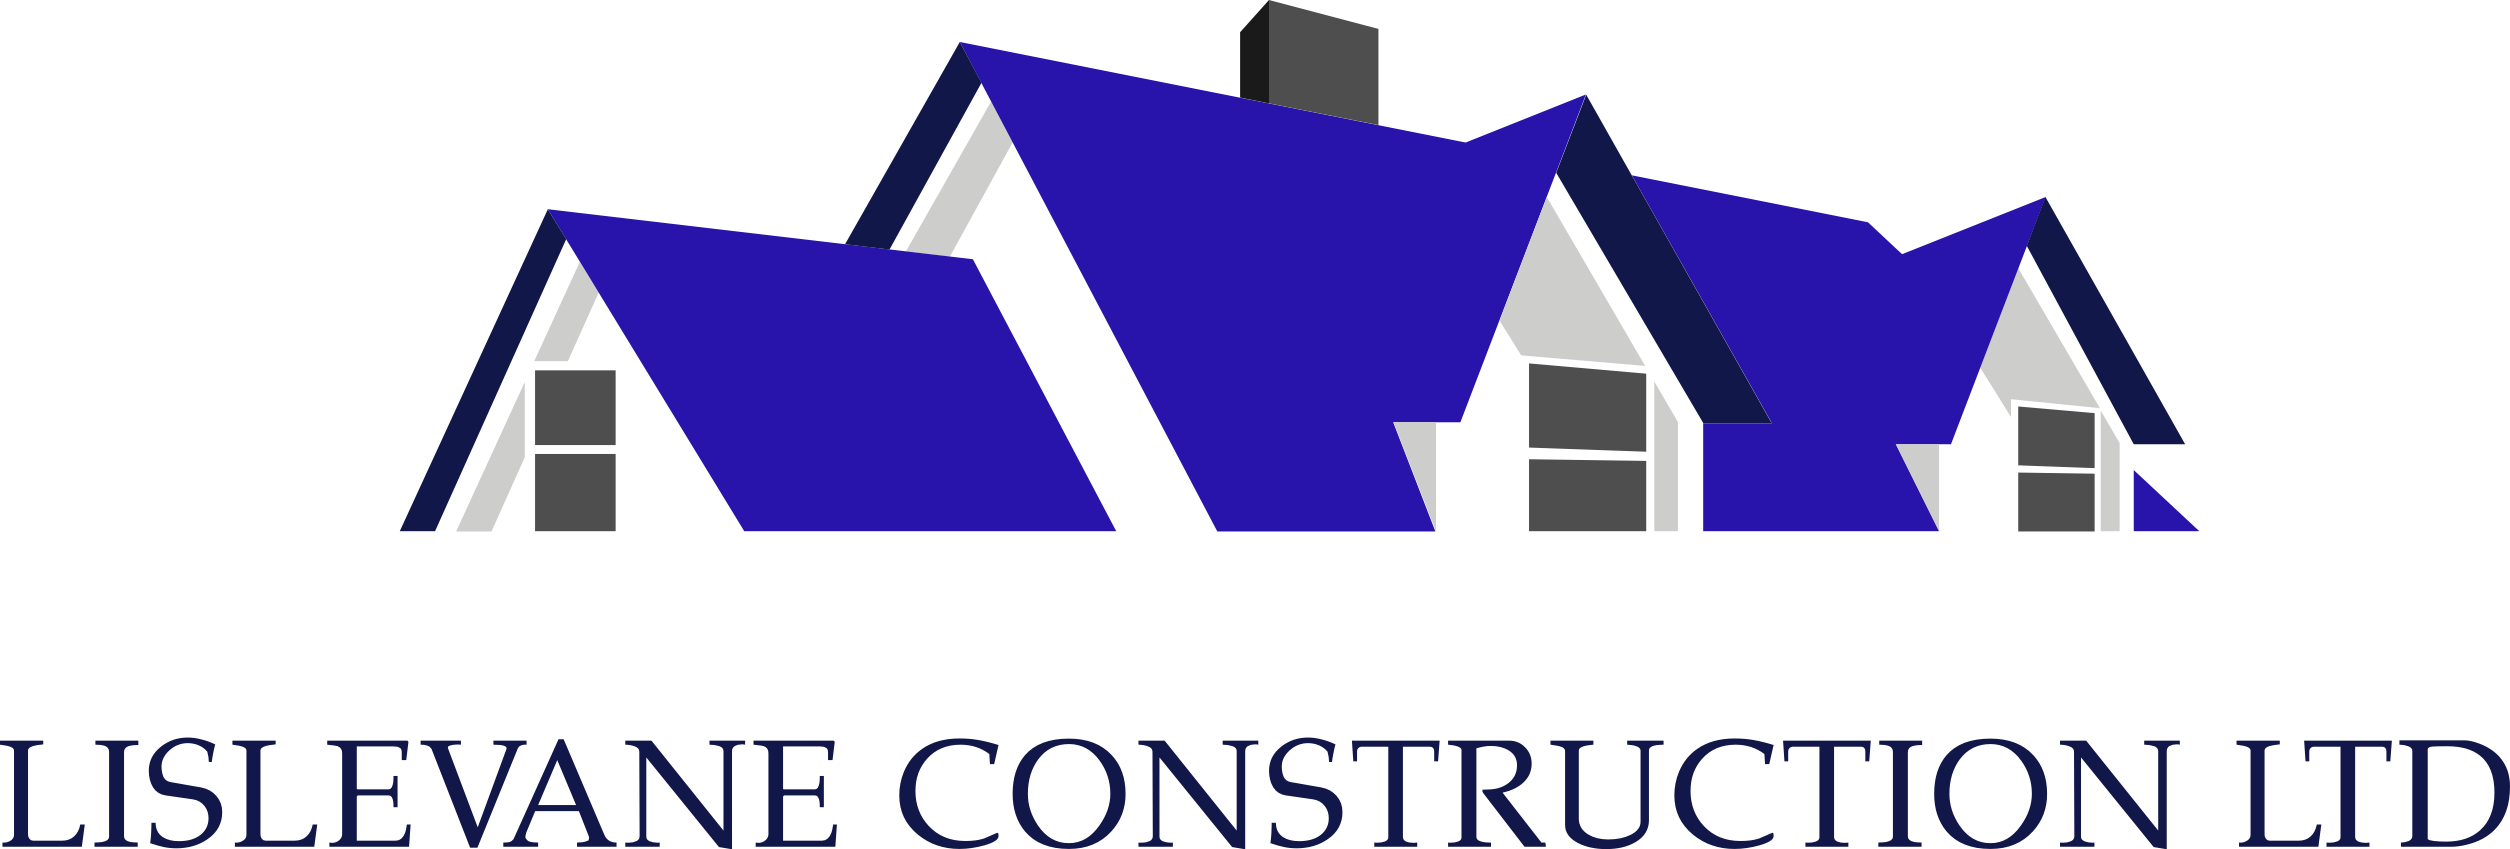 Lislevane Construction Ltd